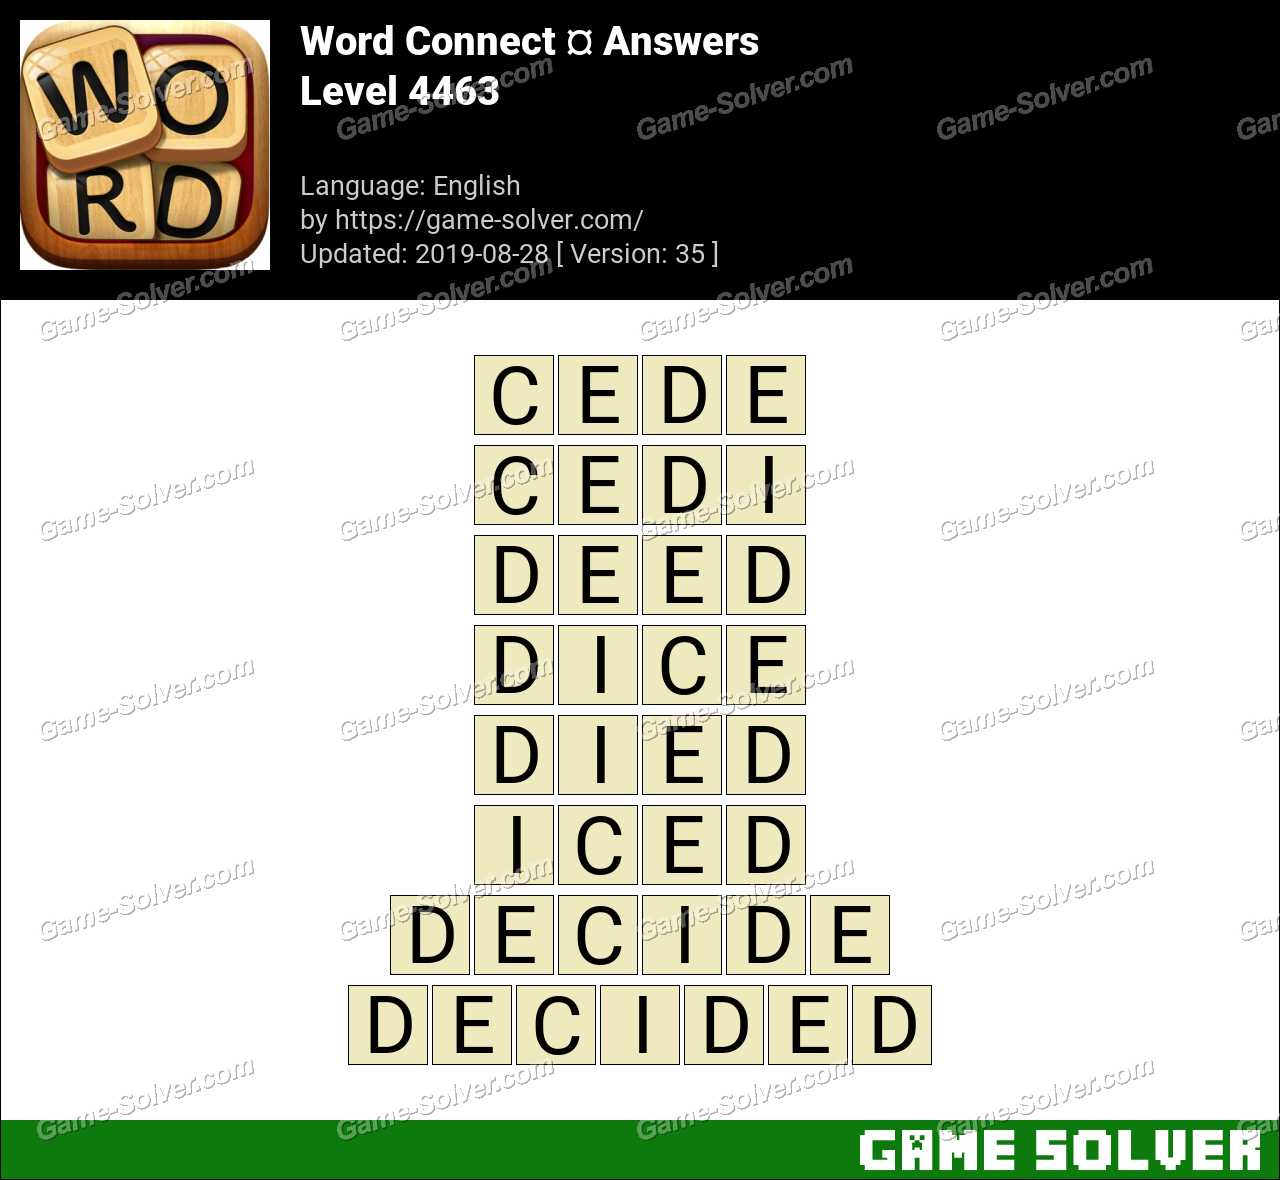 Word Connect Level 4463 Answers